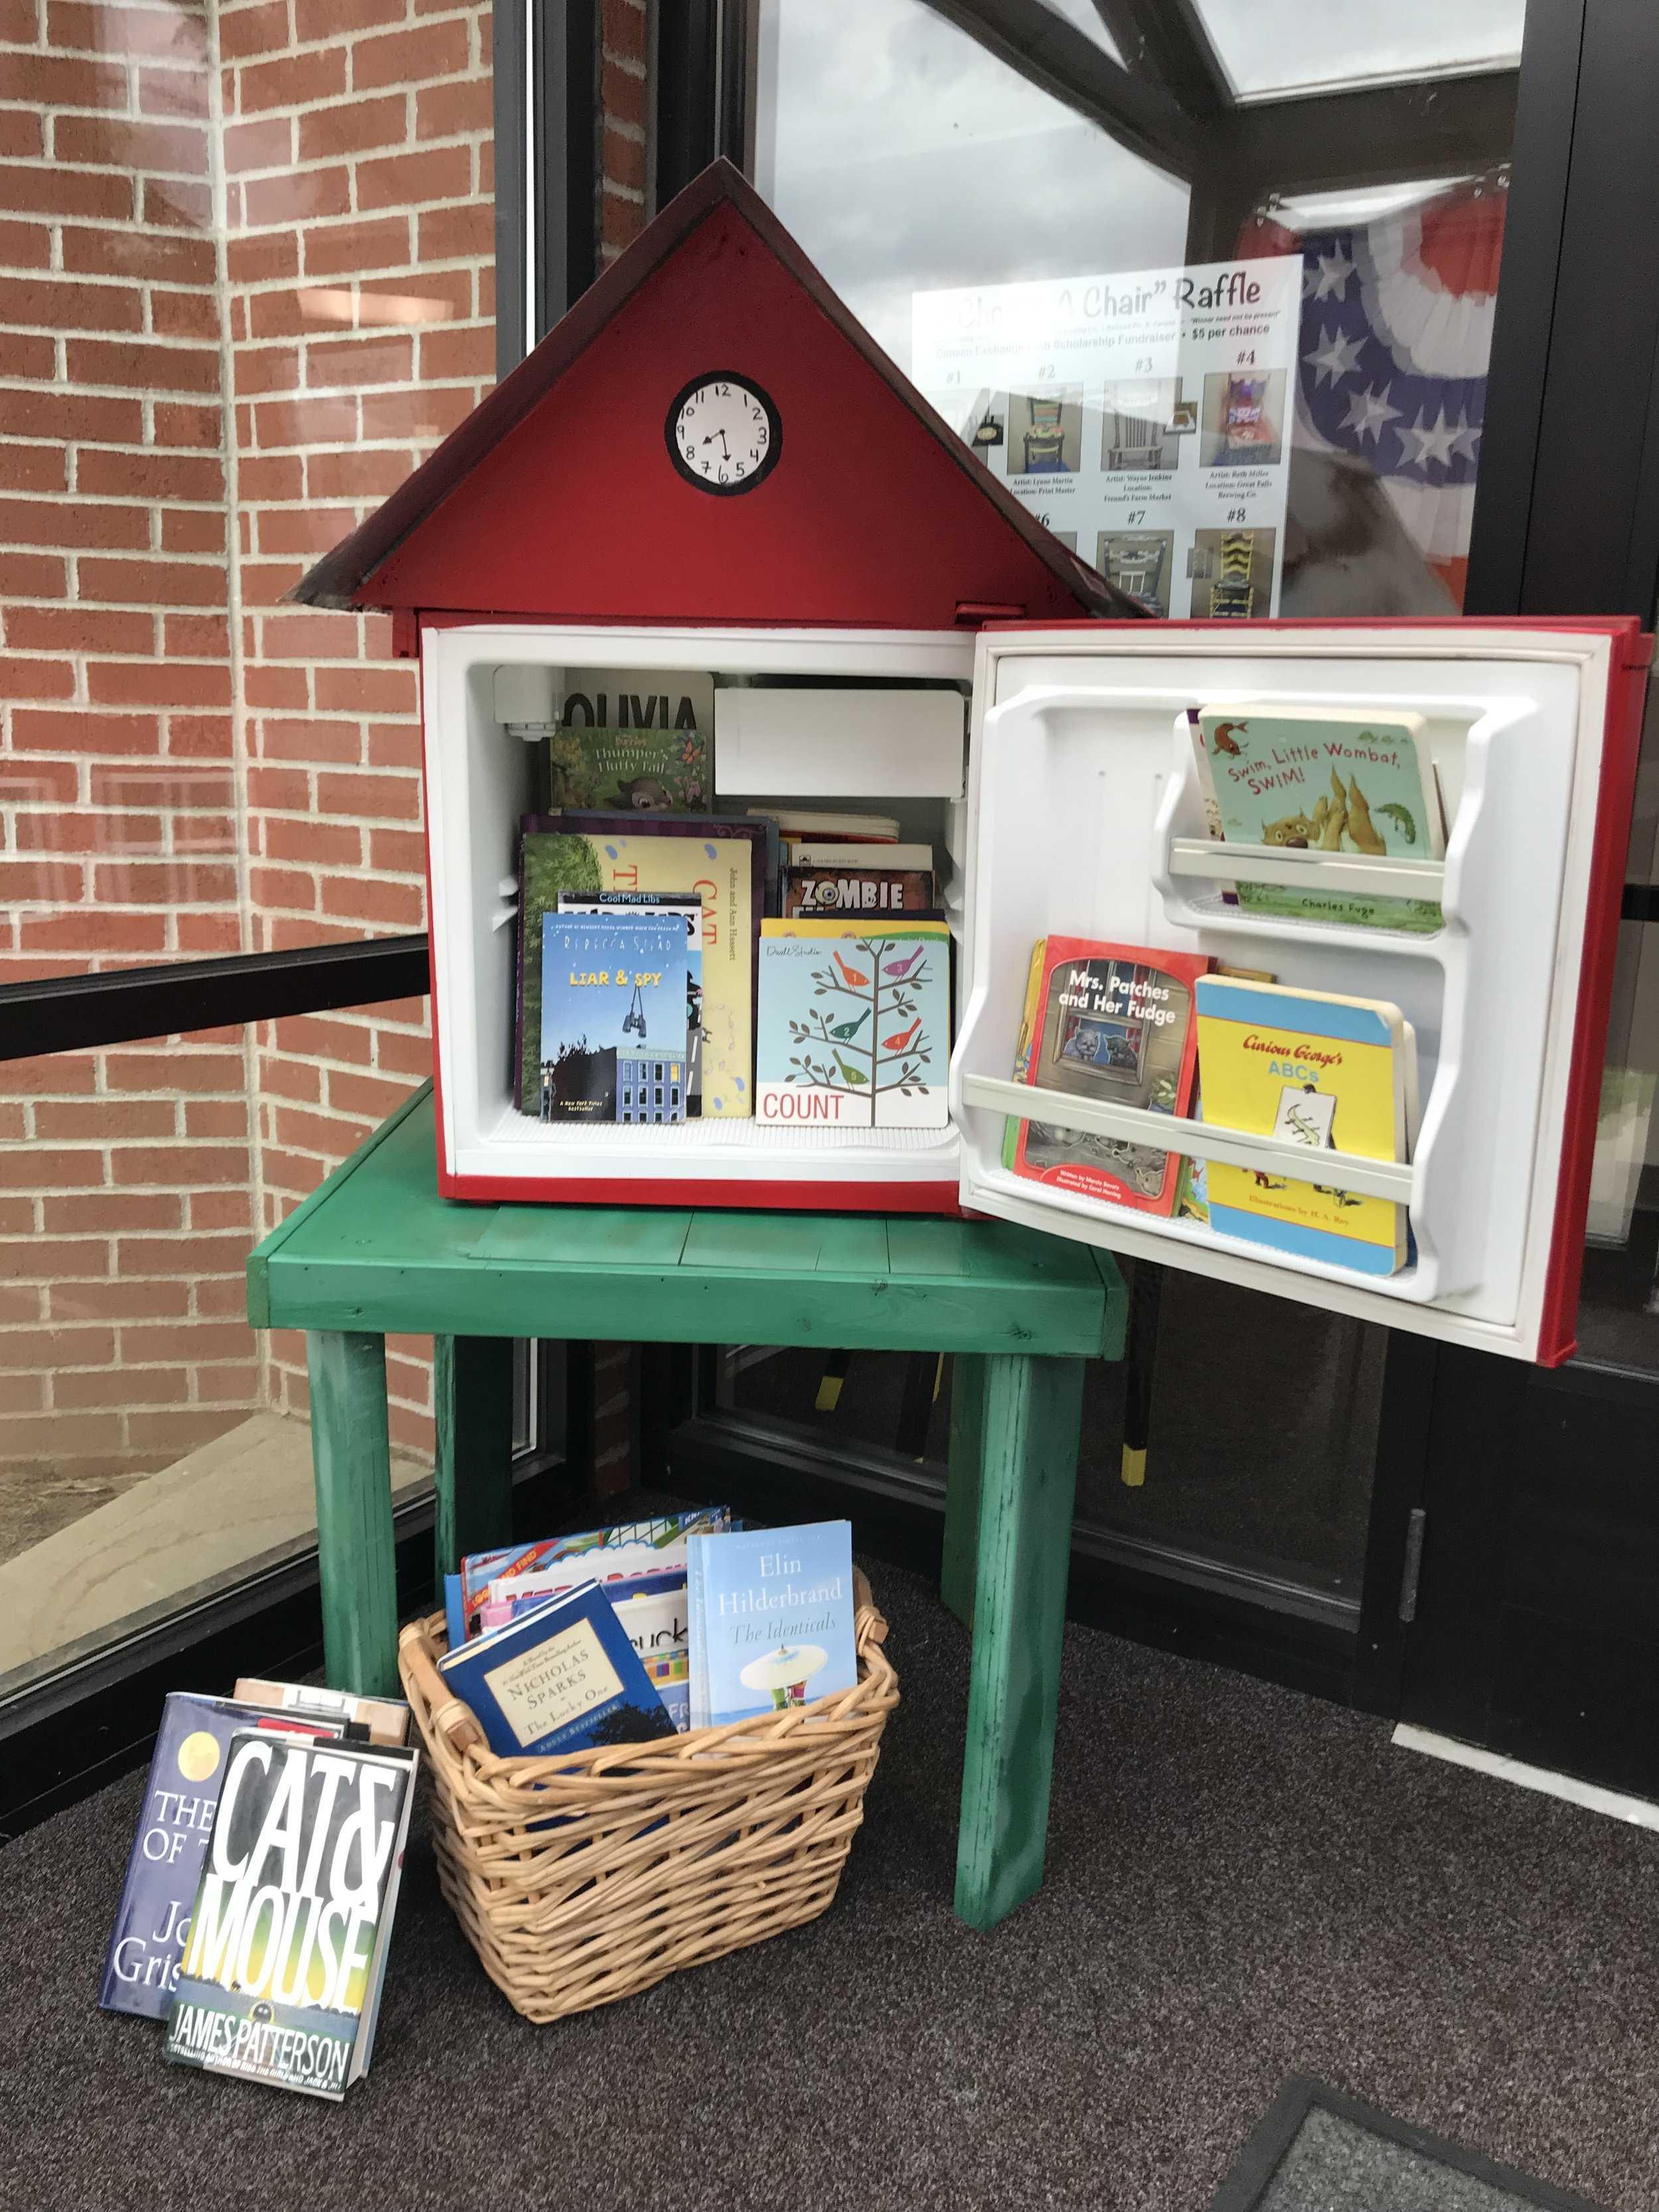 "Come visit our new ""Little Free Library"" started on May 16, 2019 by Barbara Leigh Johnson. Bring a book, take a book. Town Hall, 100 Pease street."